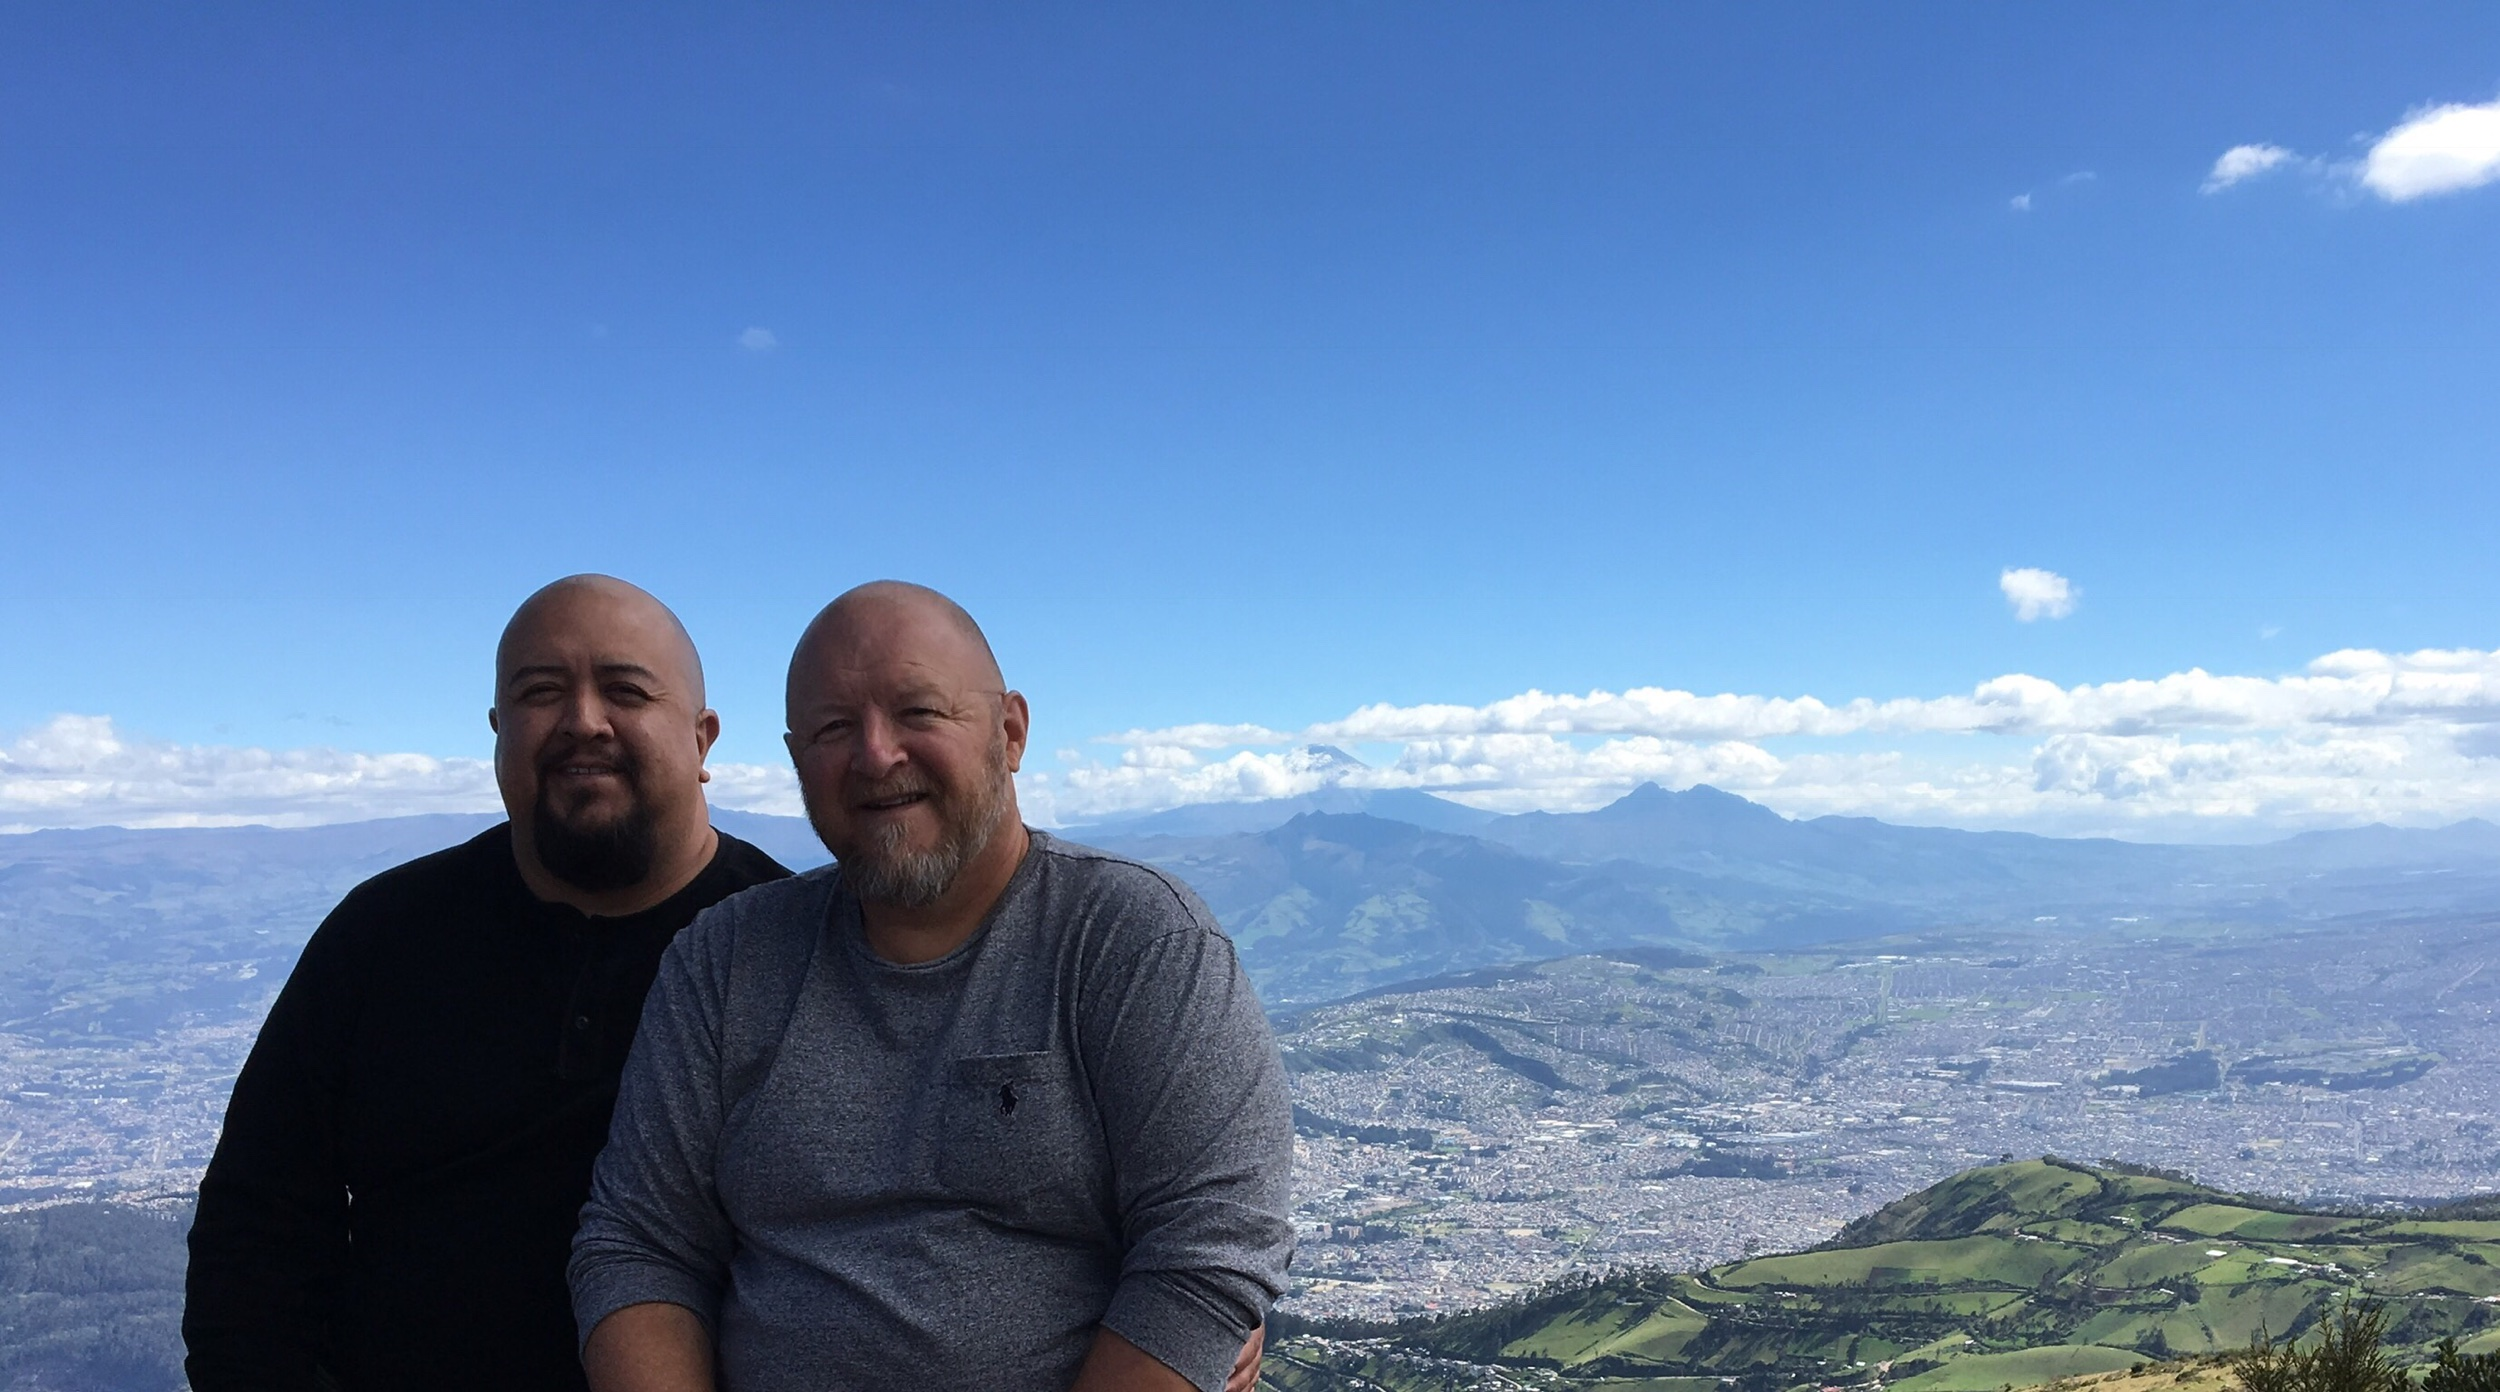 Quito, the capital, as seen from the top of the TeleferiQo gondola lift ride at almost 13,000 ft above sea level